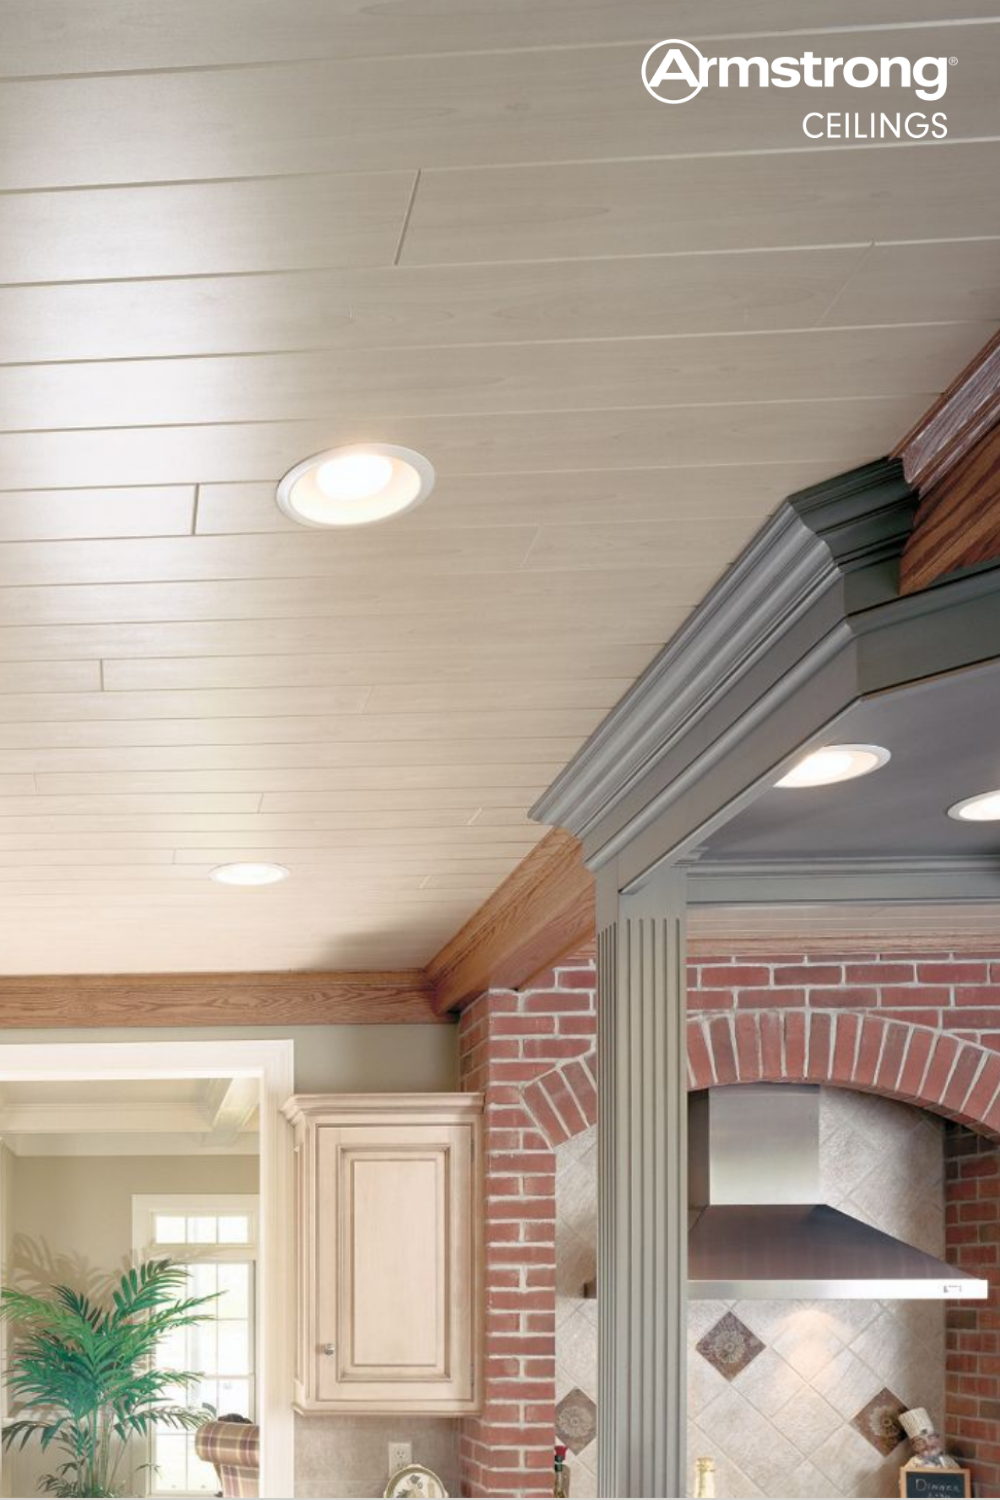 Stunning White Wash Woodhaven Ceiling Planks In 2020 Armstrong Ceiling Woodhaven Ceiling